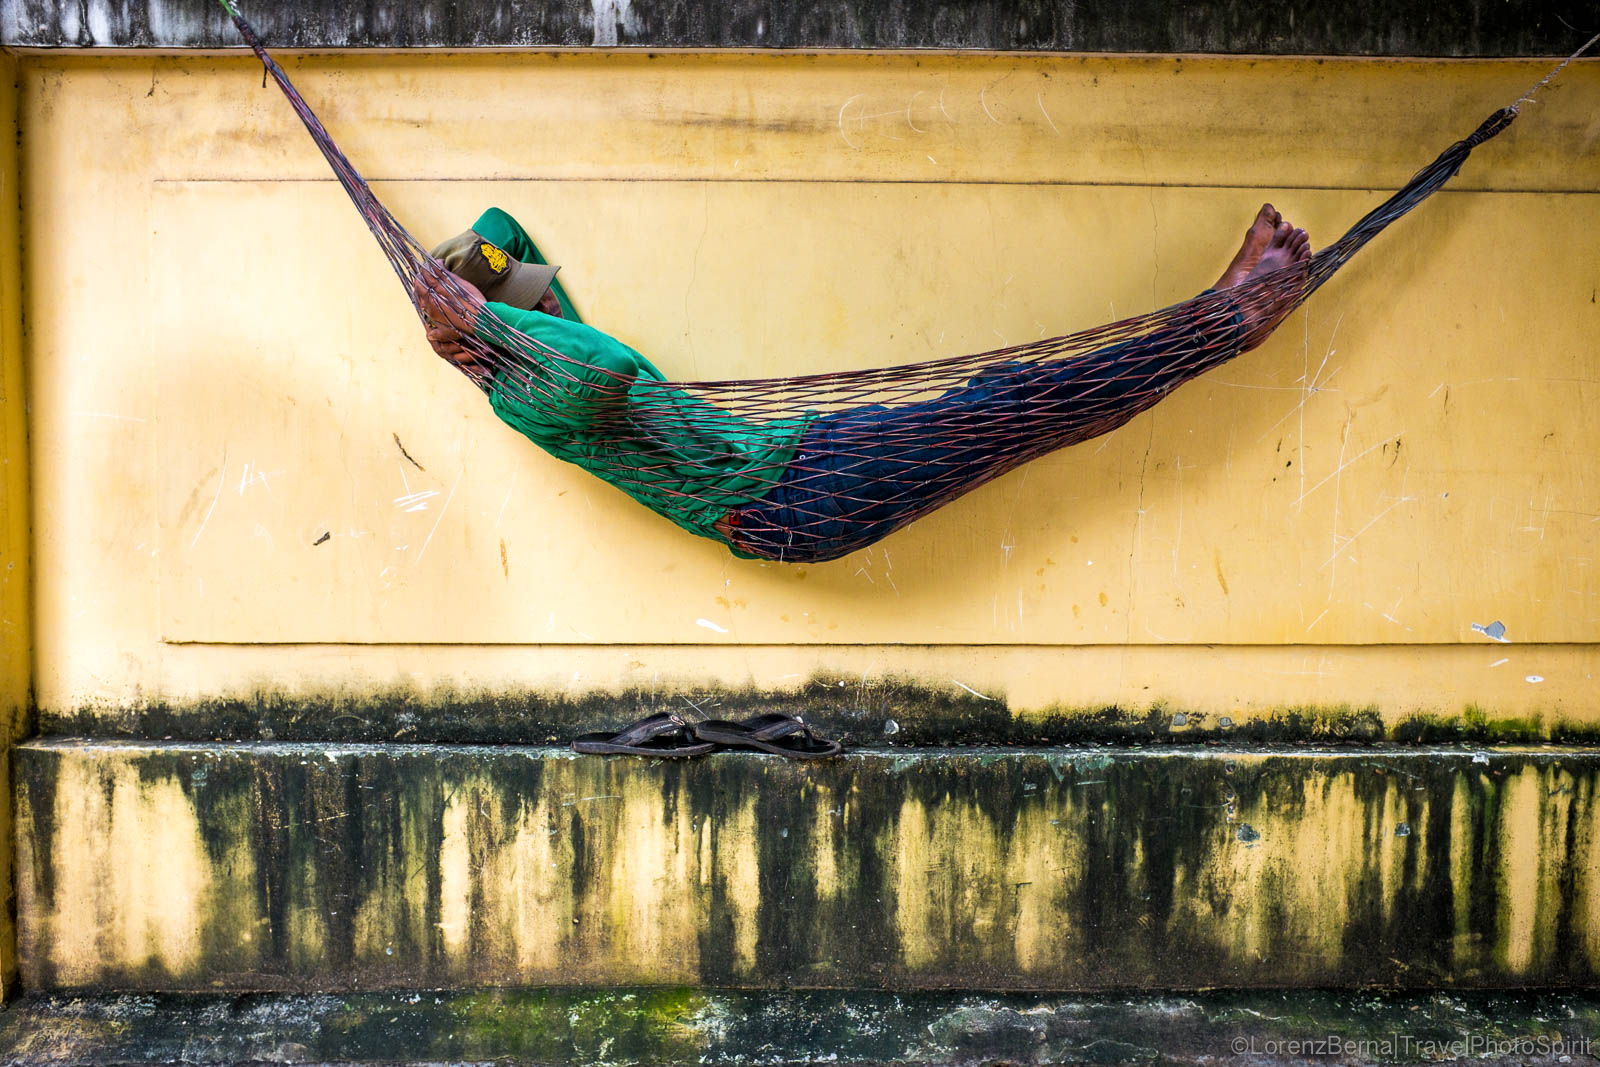 Man sleeping in Hammock in Phnom Penh - A Lorenz Berna Travel Photography of Cambodia